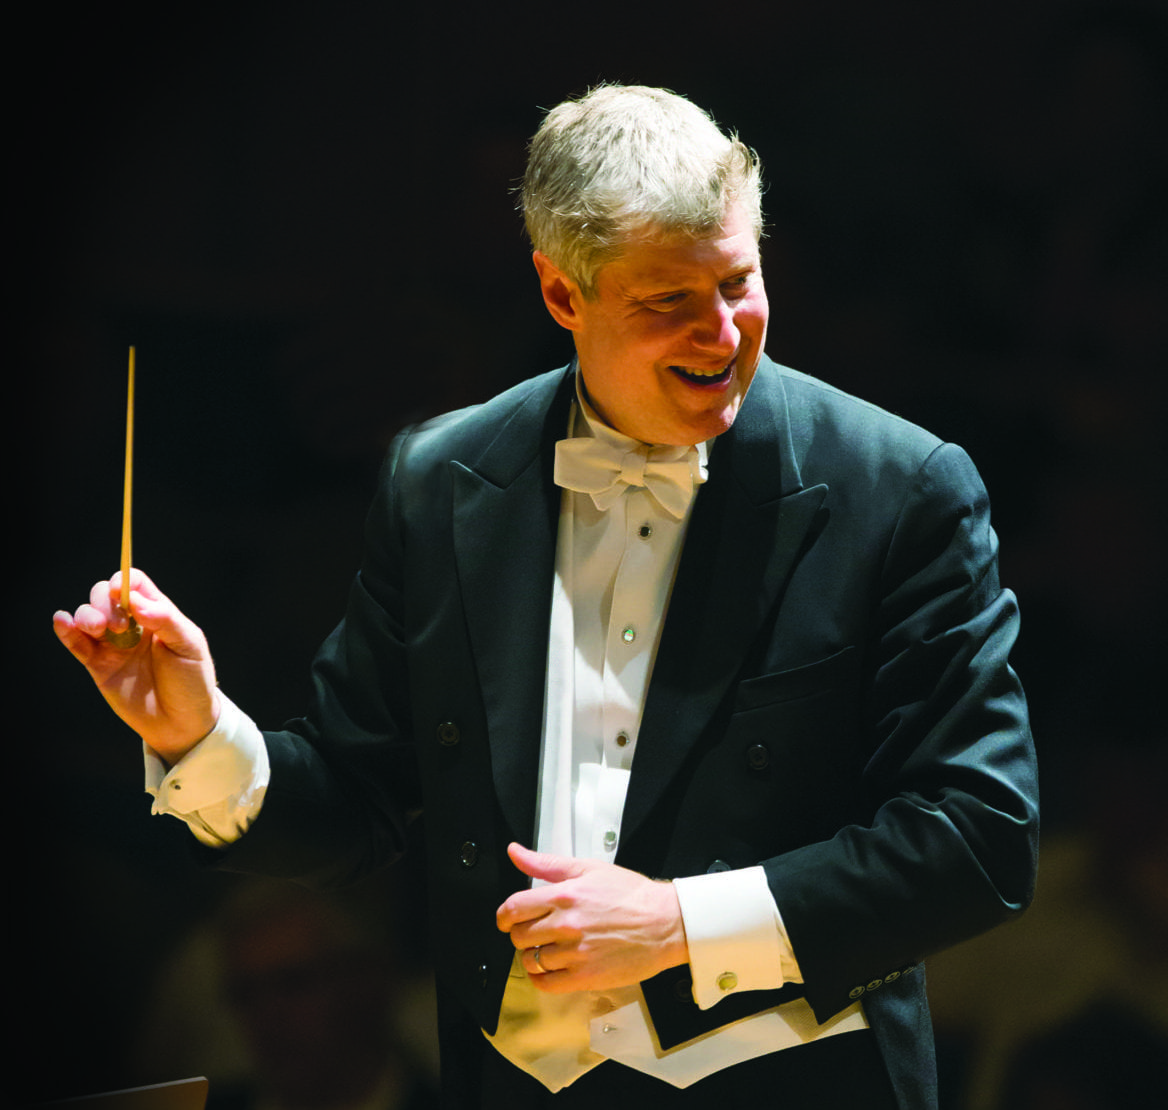 a man conducting an orchestra.